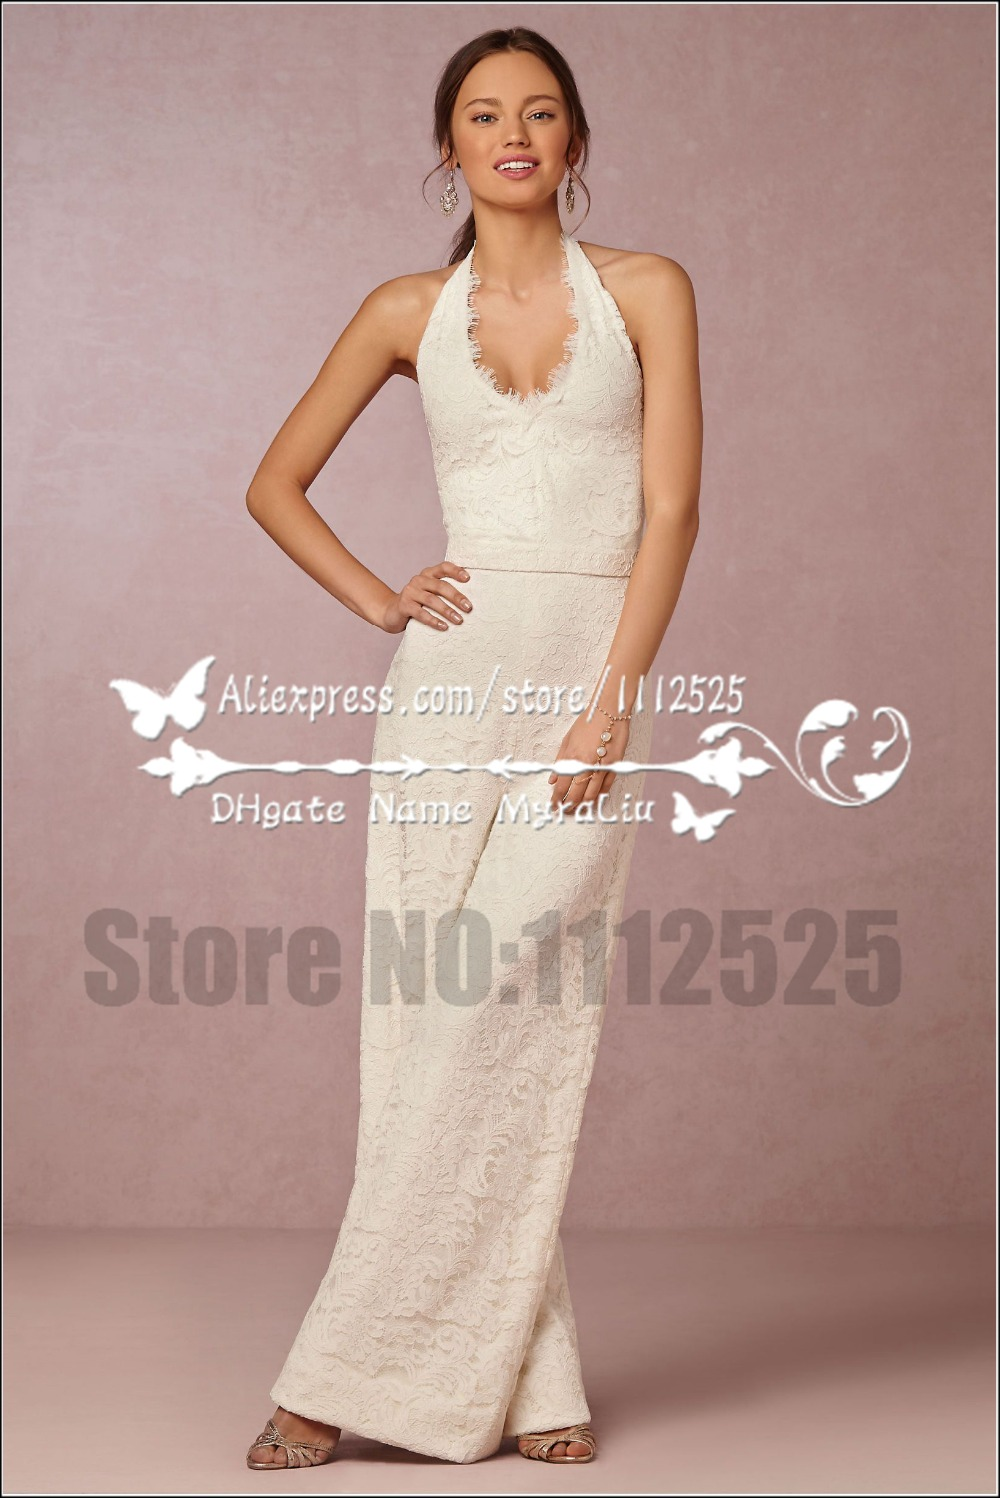 Us 142 0 Awp 1002 New Arrival Wedding Jumpsuit Bridal Dresses Charming Lace Halter Dress For Bride Women S Pant Suits In Wedding Dresses From